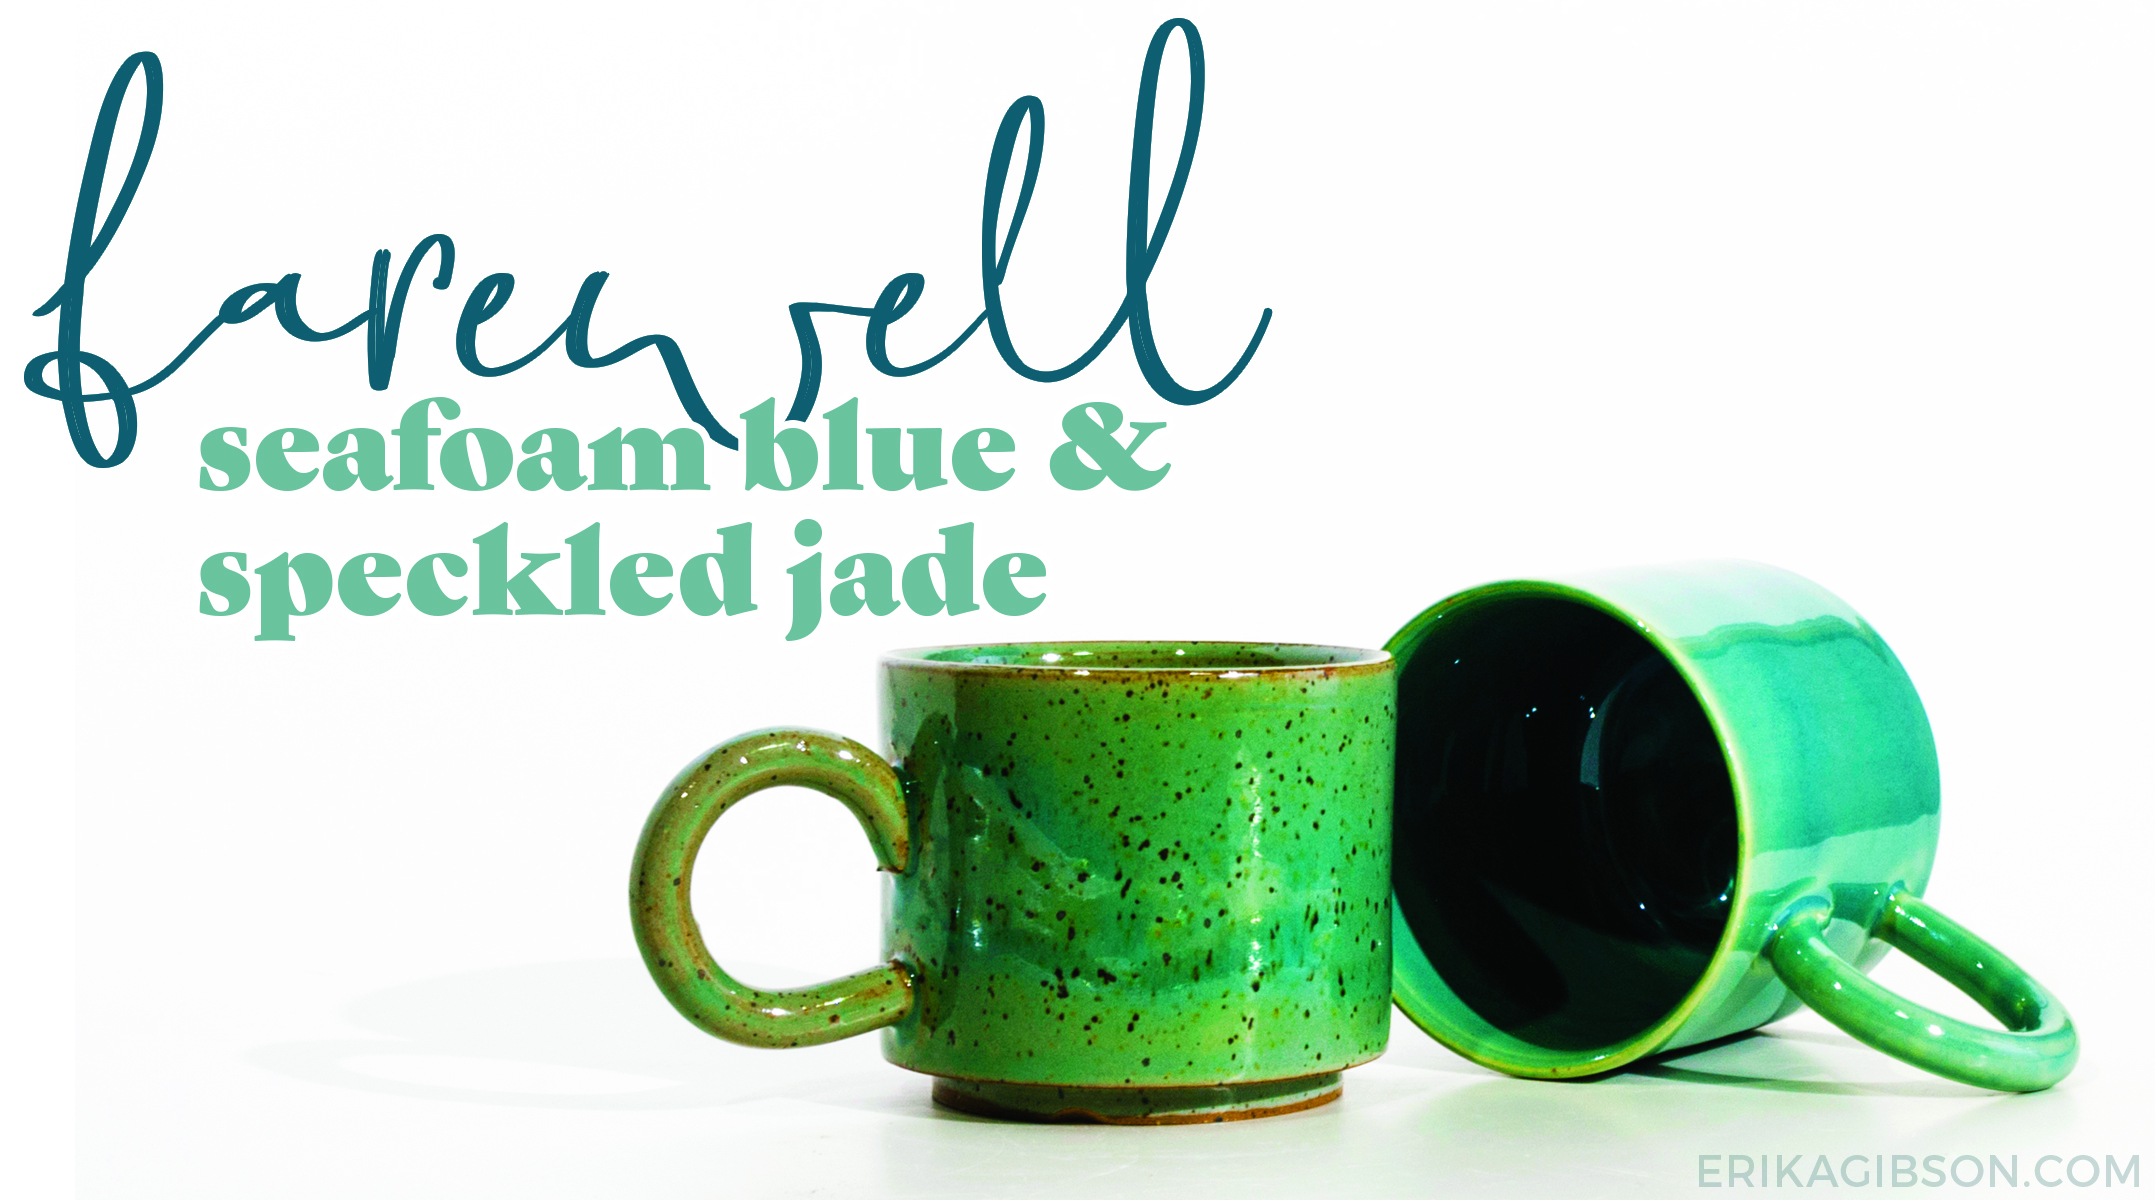 Farewell, Seafoam Blue and Speckled Jade